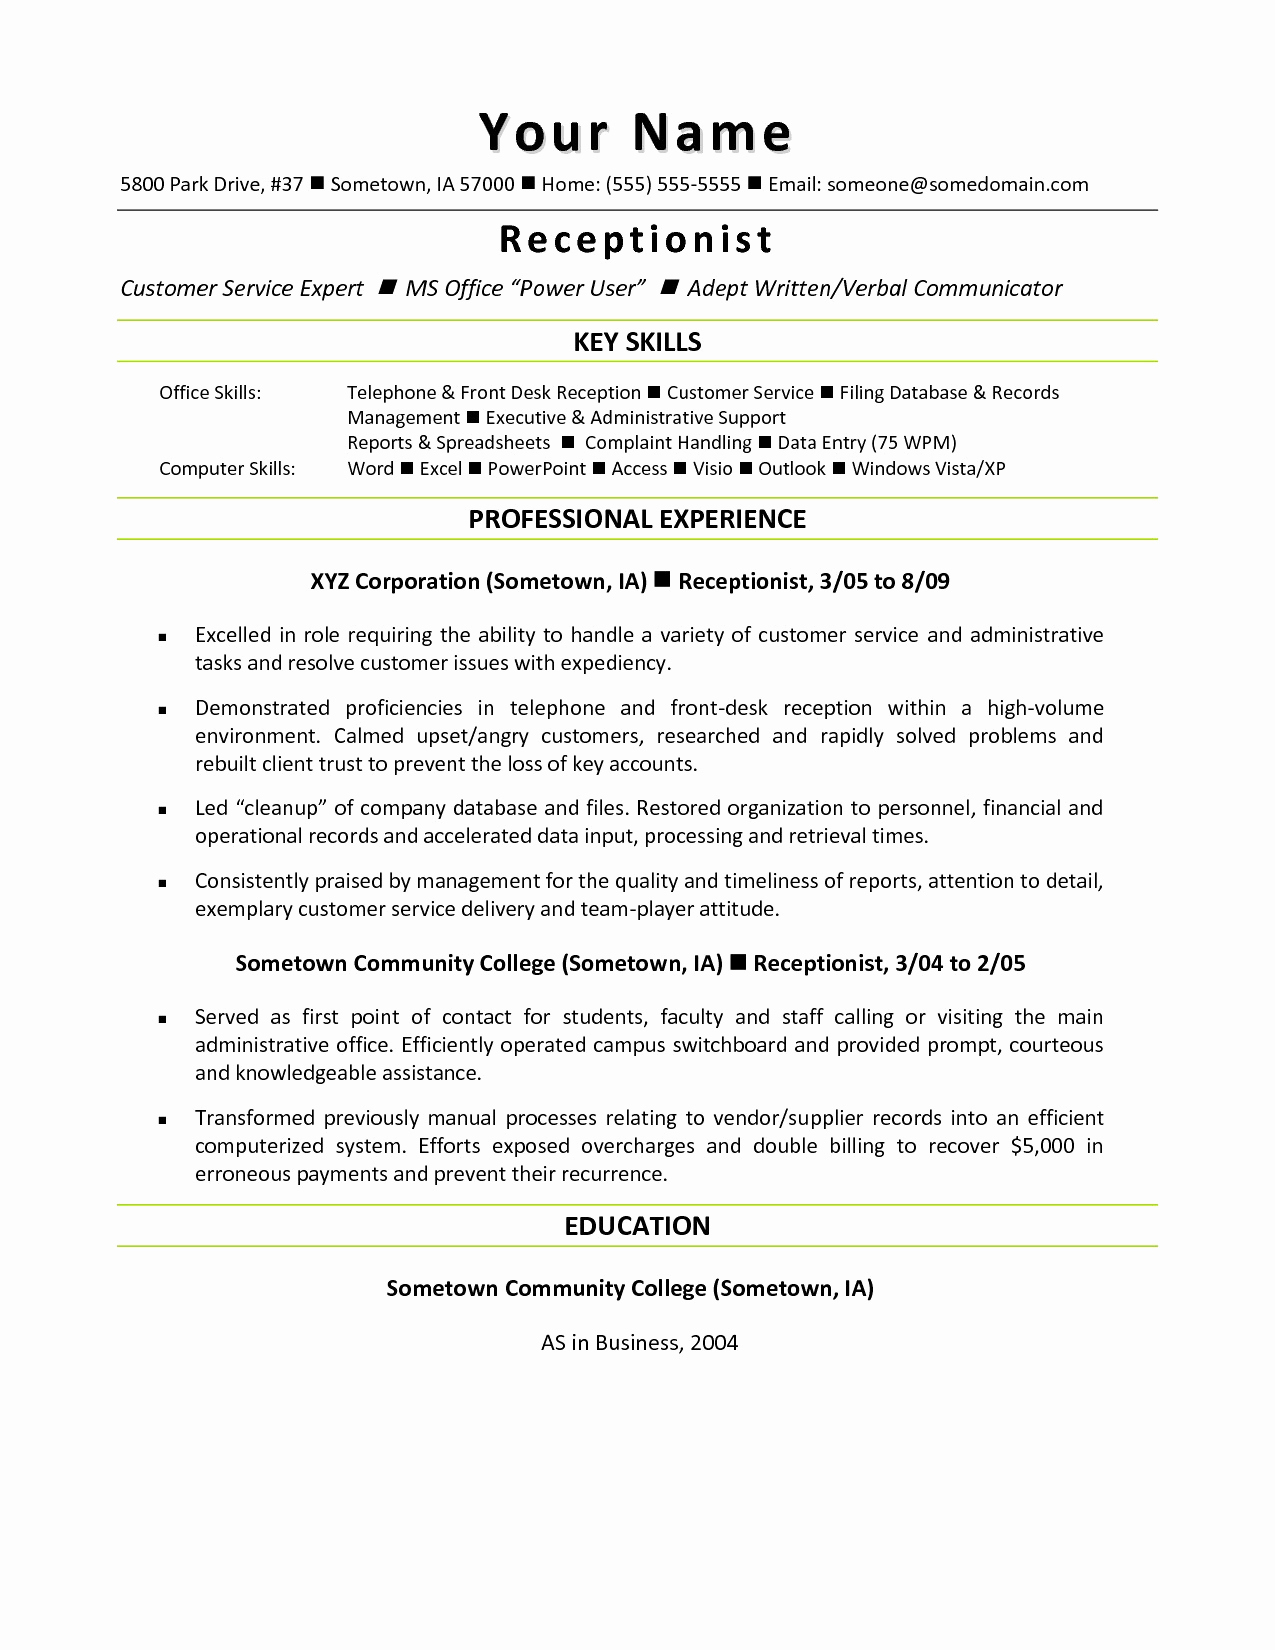 free letter of understanding template example-Letter Agreement Examples Luxury Letter Agreement Template Awesome Free Resume 0d Letter 9-i